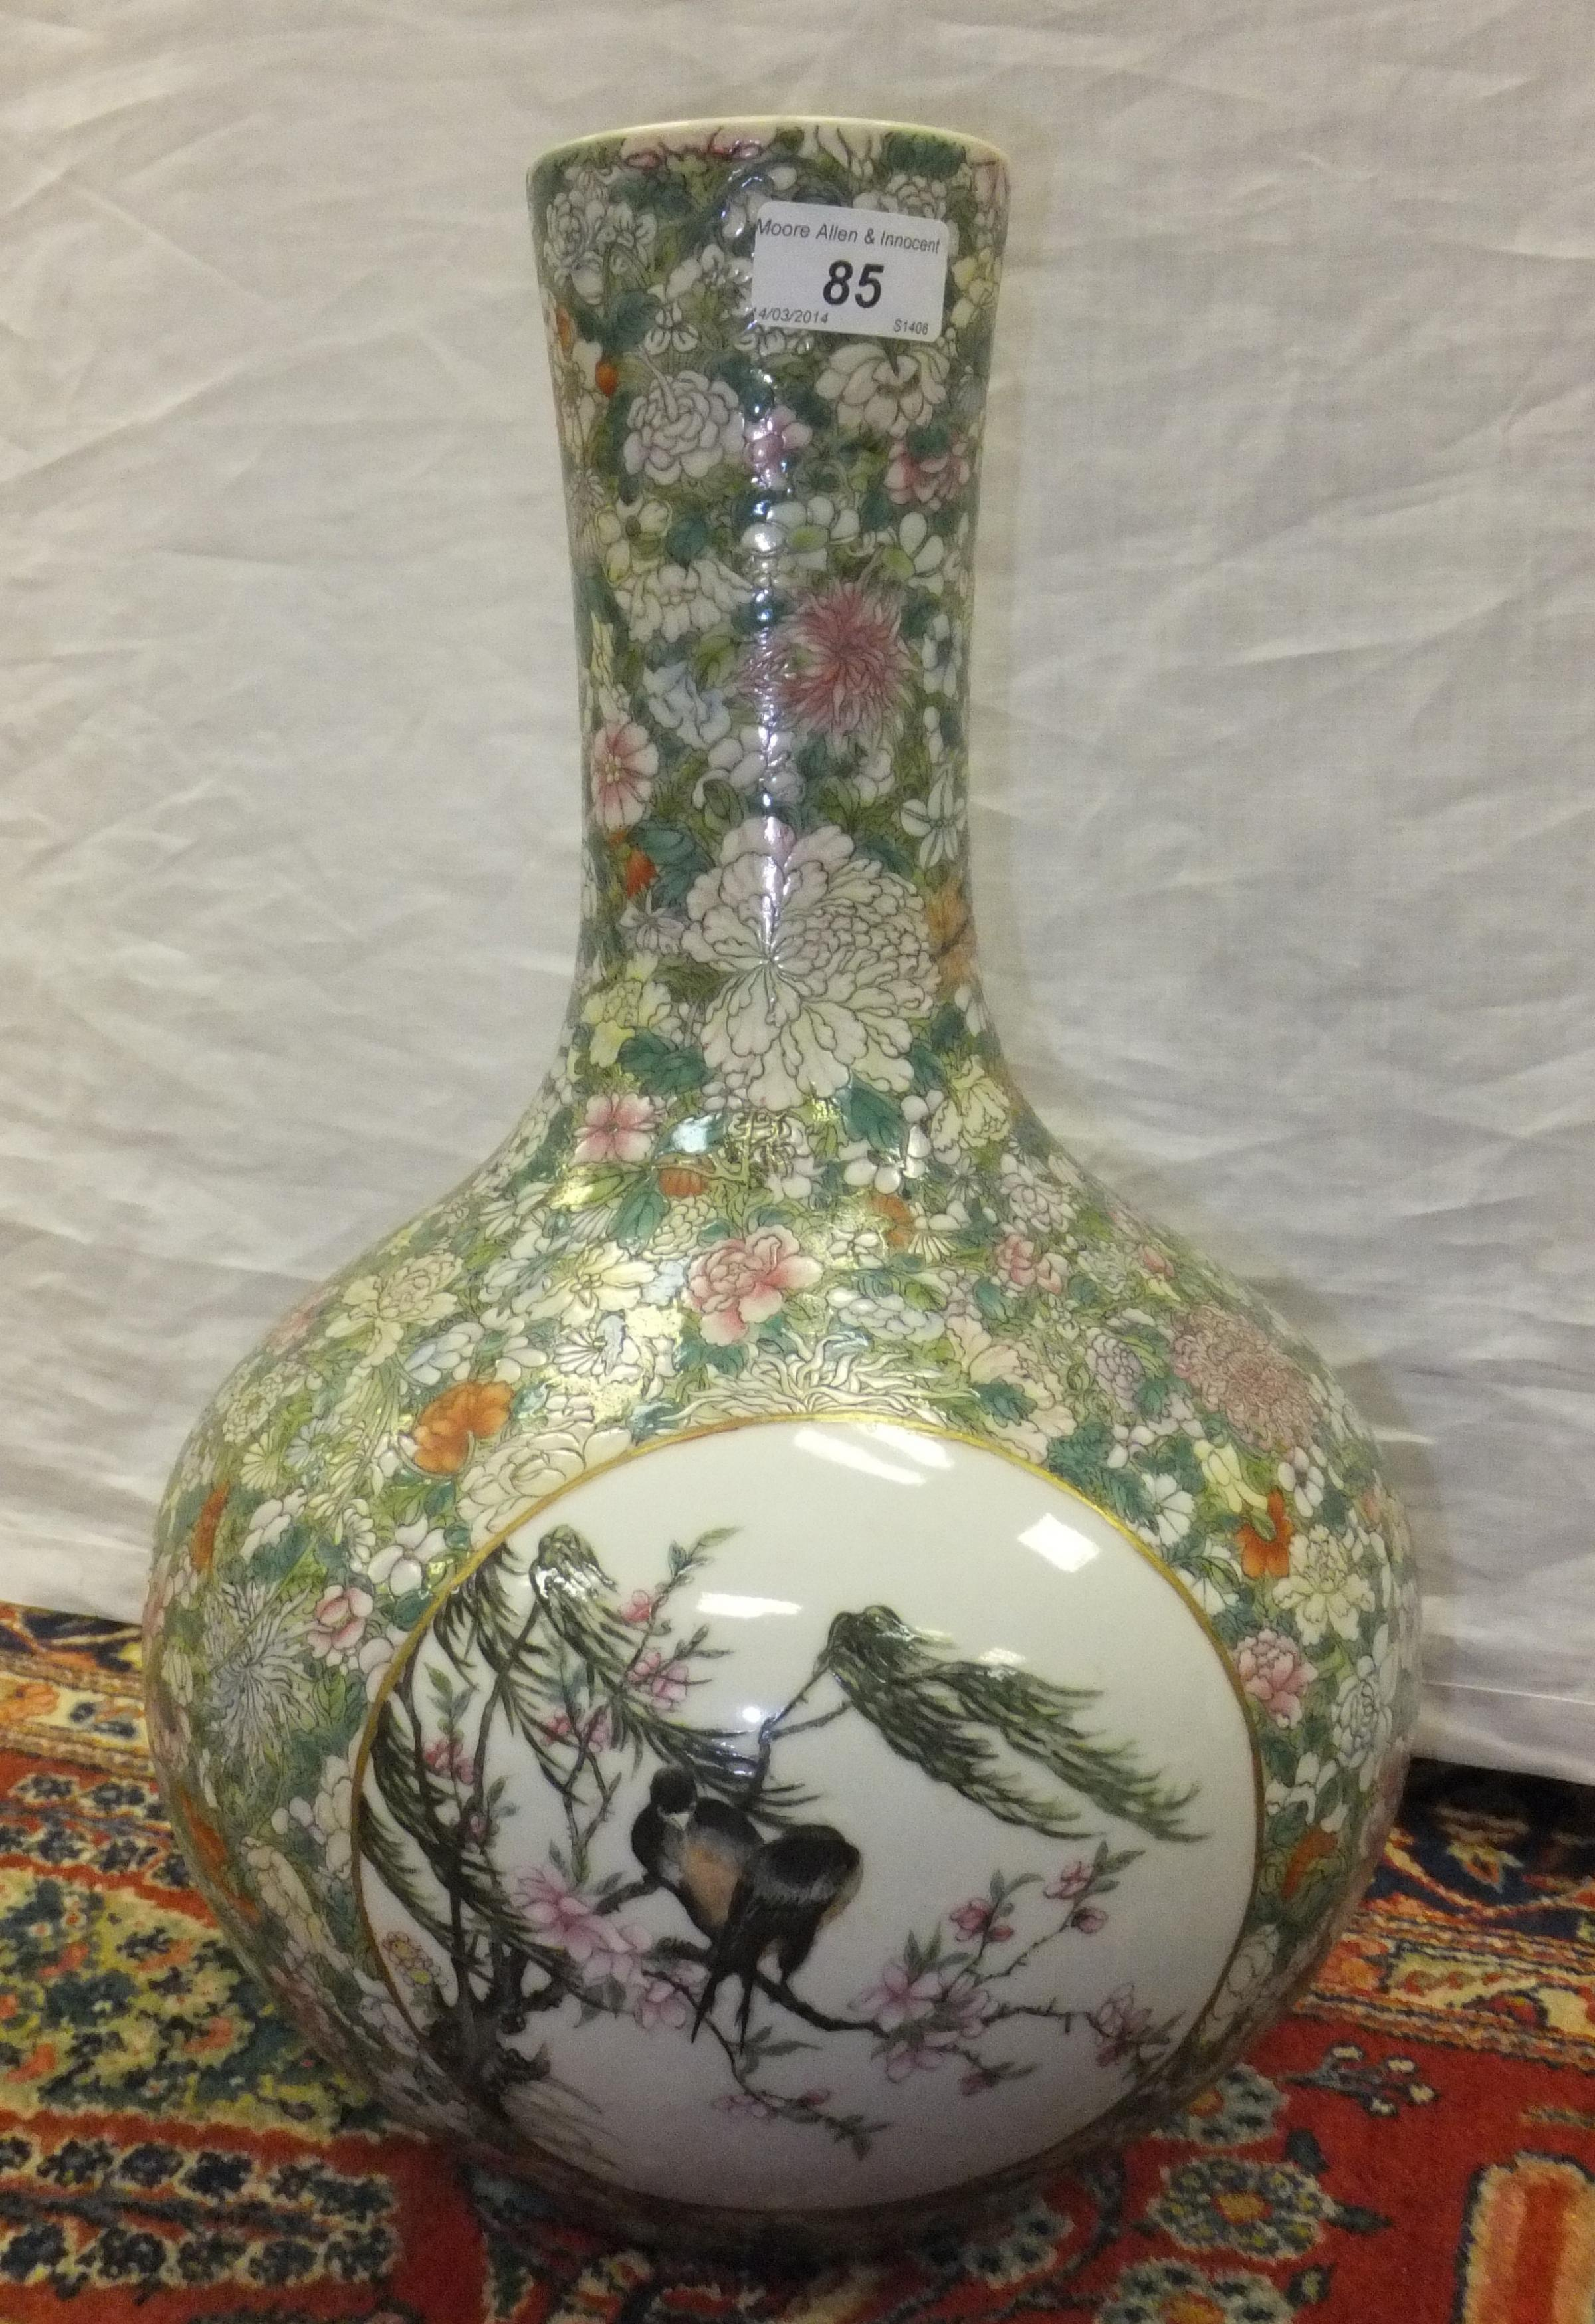 Auctioneers were surprised when this Chinese vase sold for £6,500